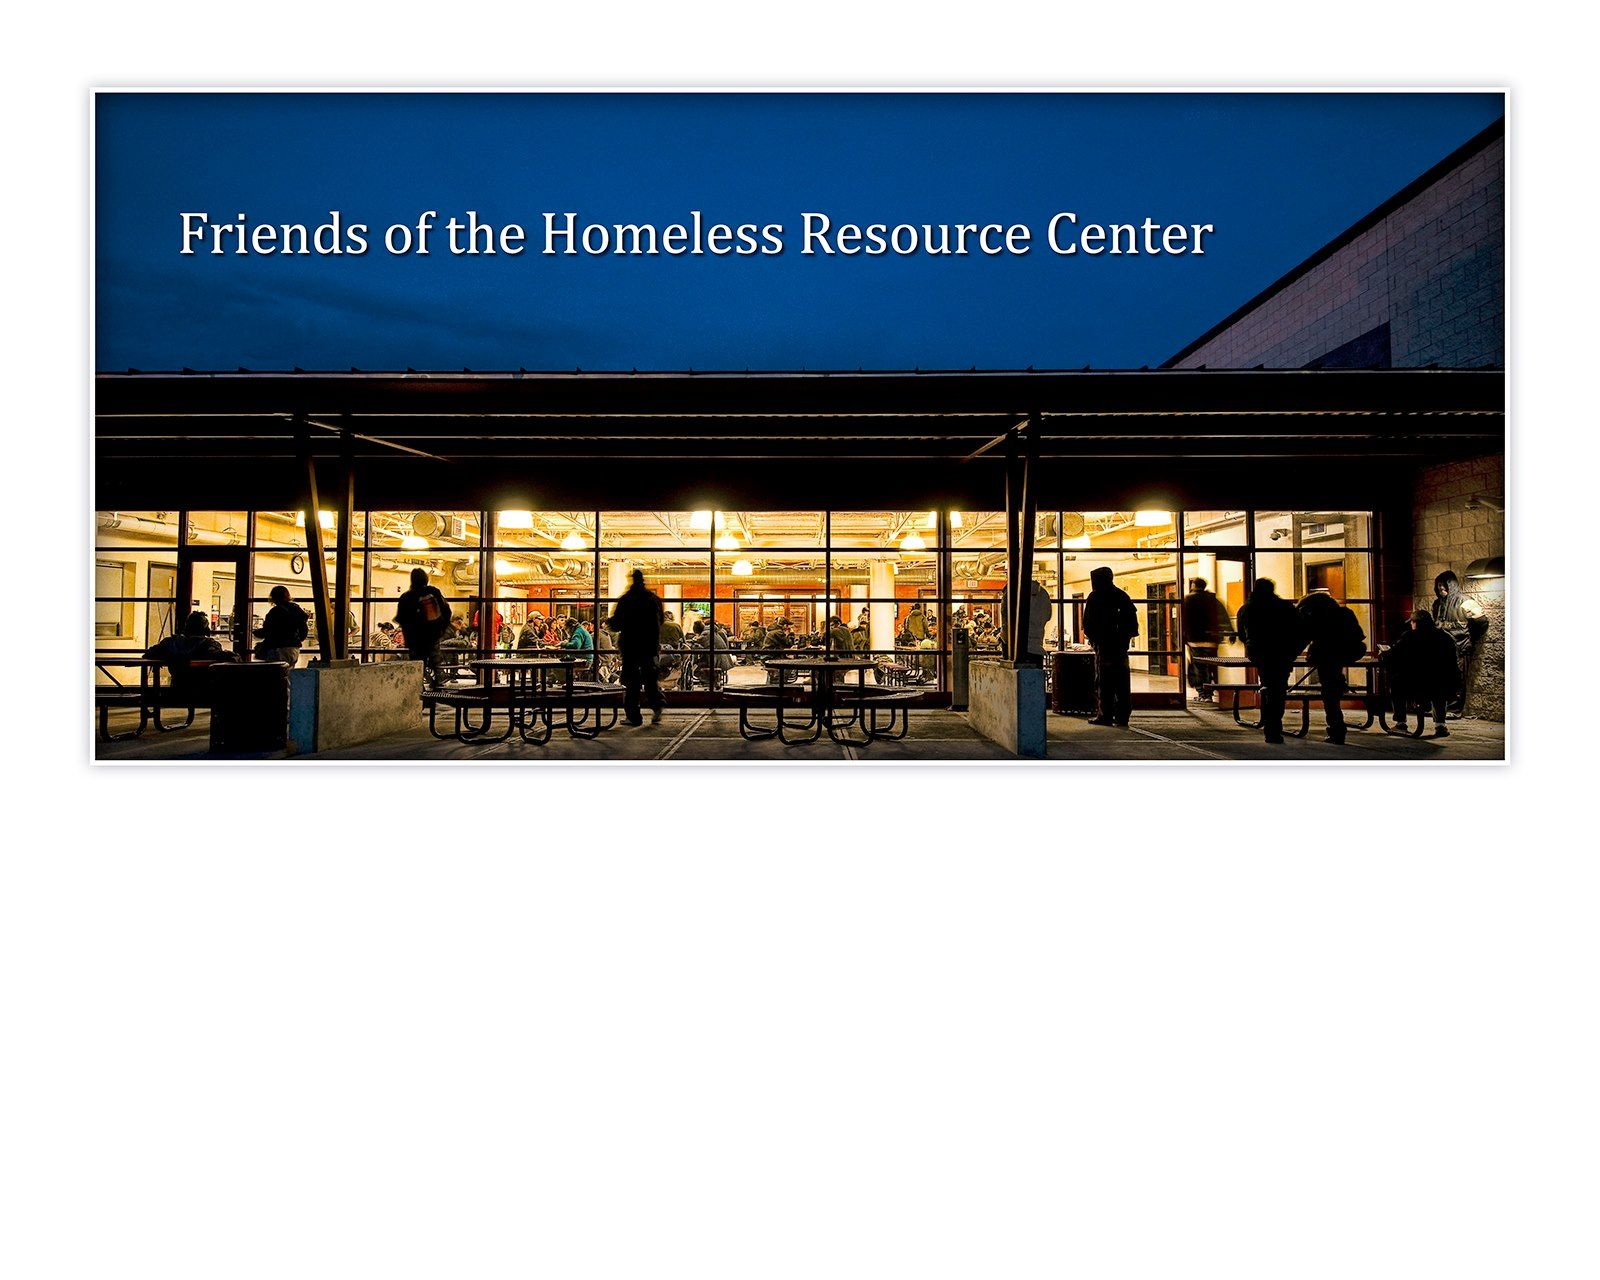 Friends of the Homeless Shelter